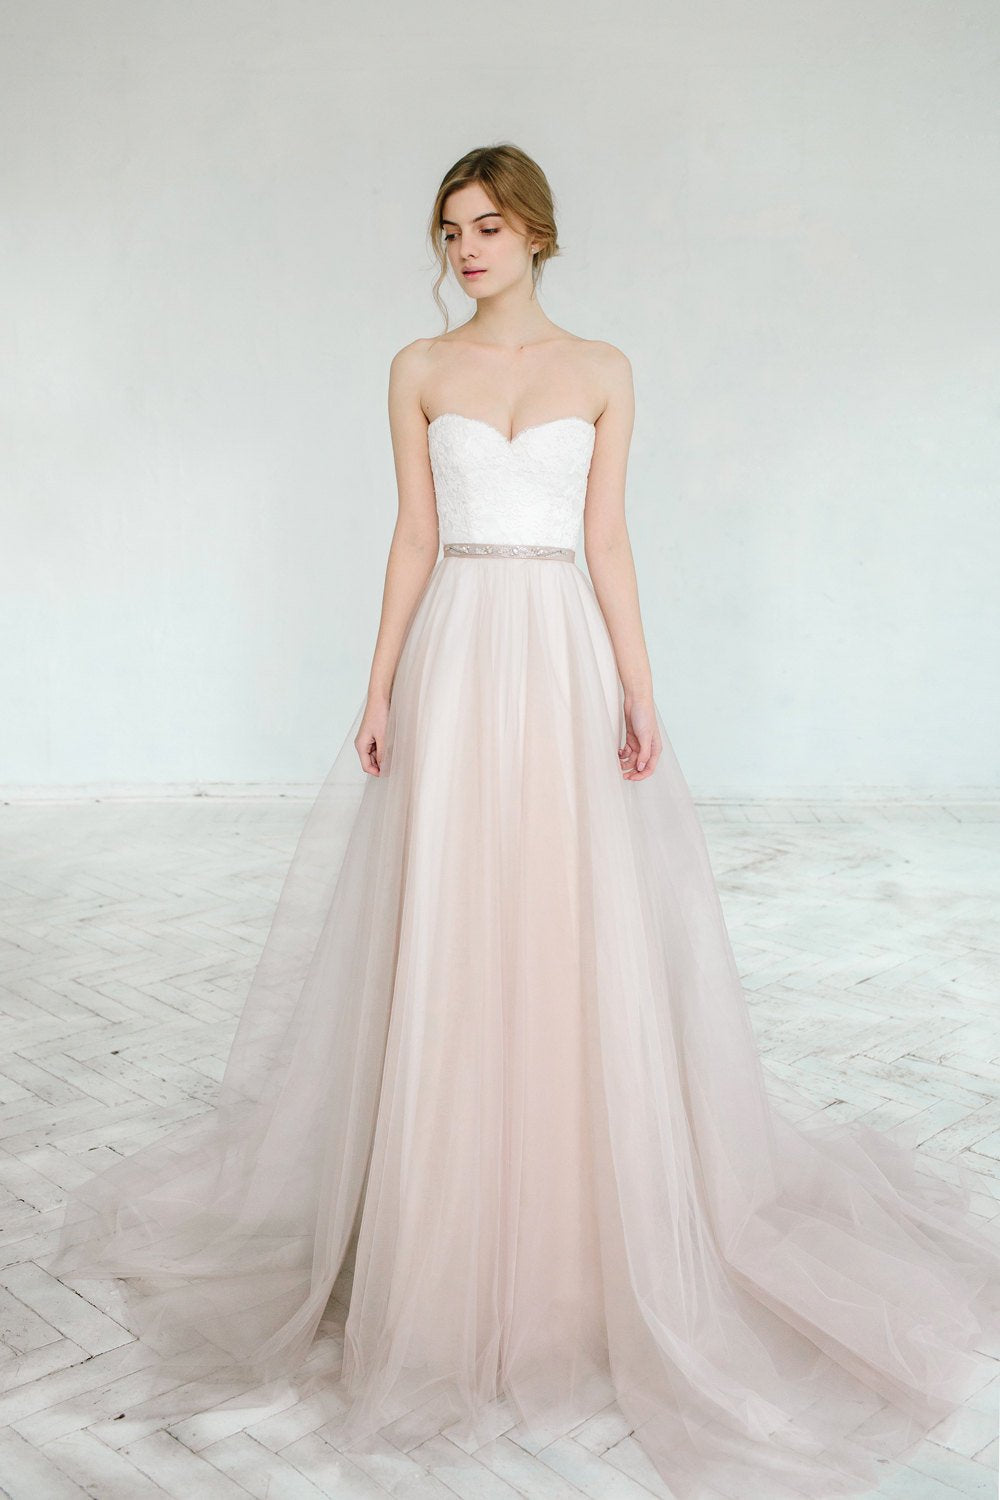 Classic Ball Gown Sweetheart Wedding Dress - daisystyledress